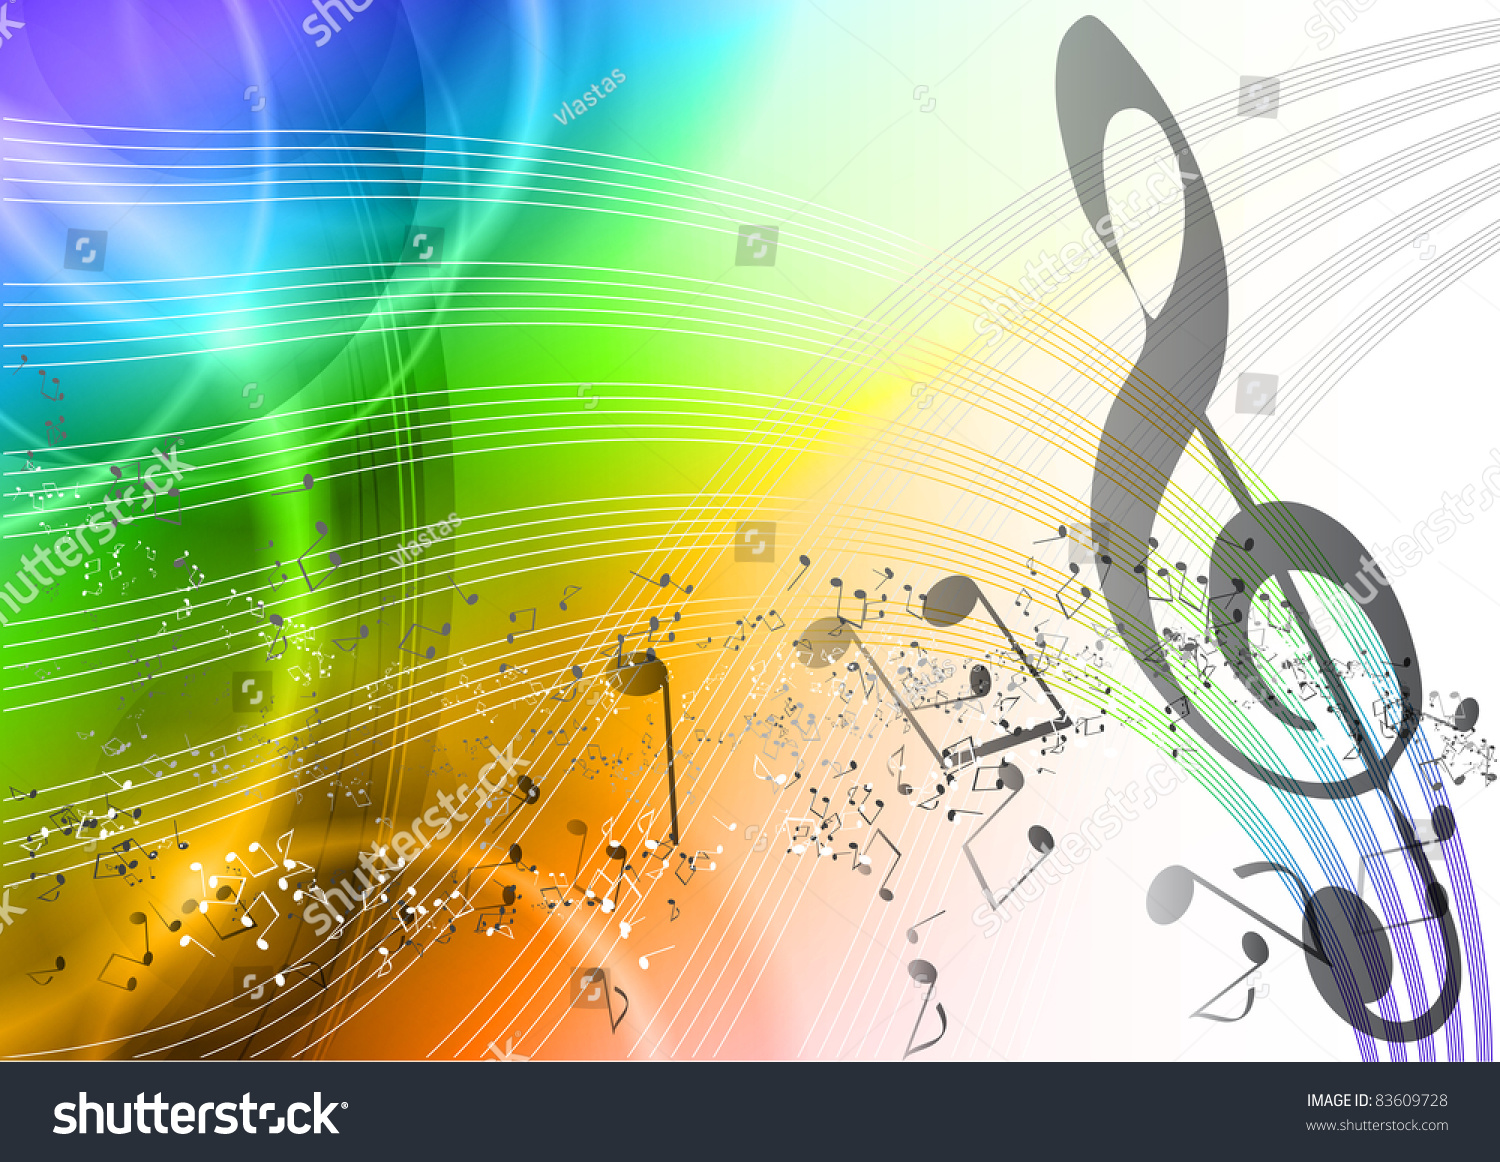 Rainbow Notes On Light Background Stock: Rainbow Music Background With Notes Stock Vector